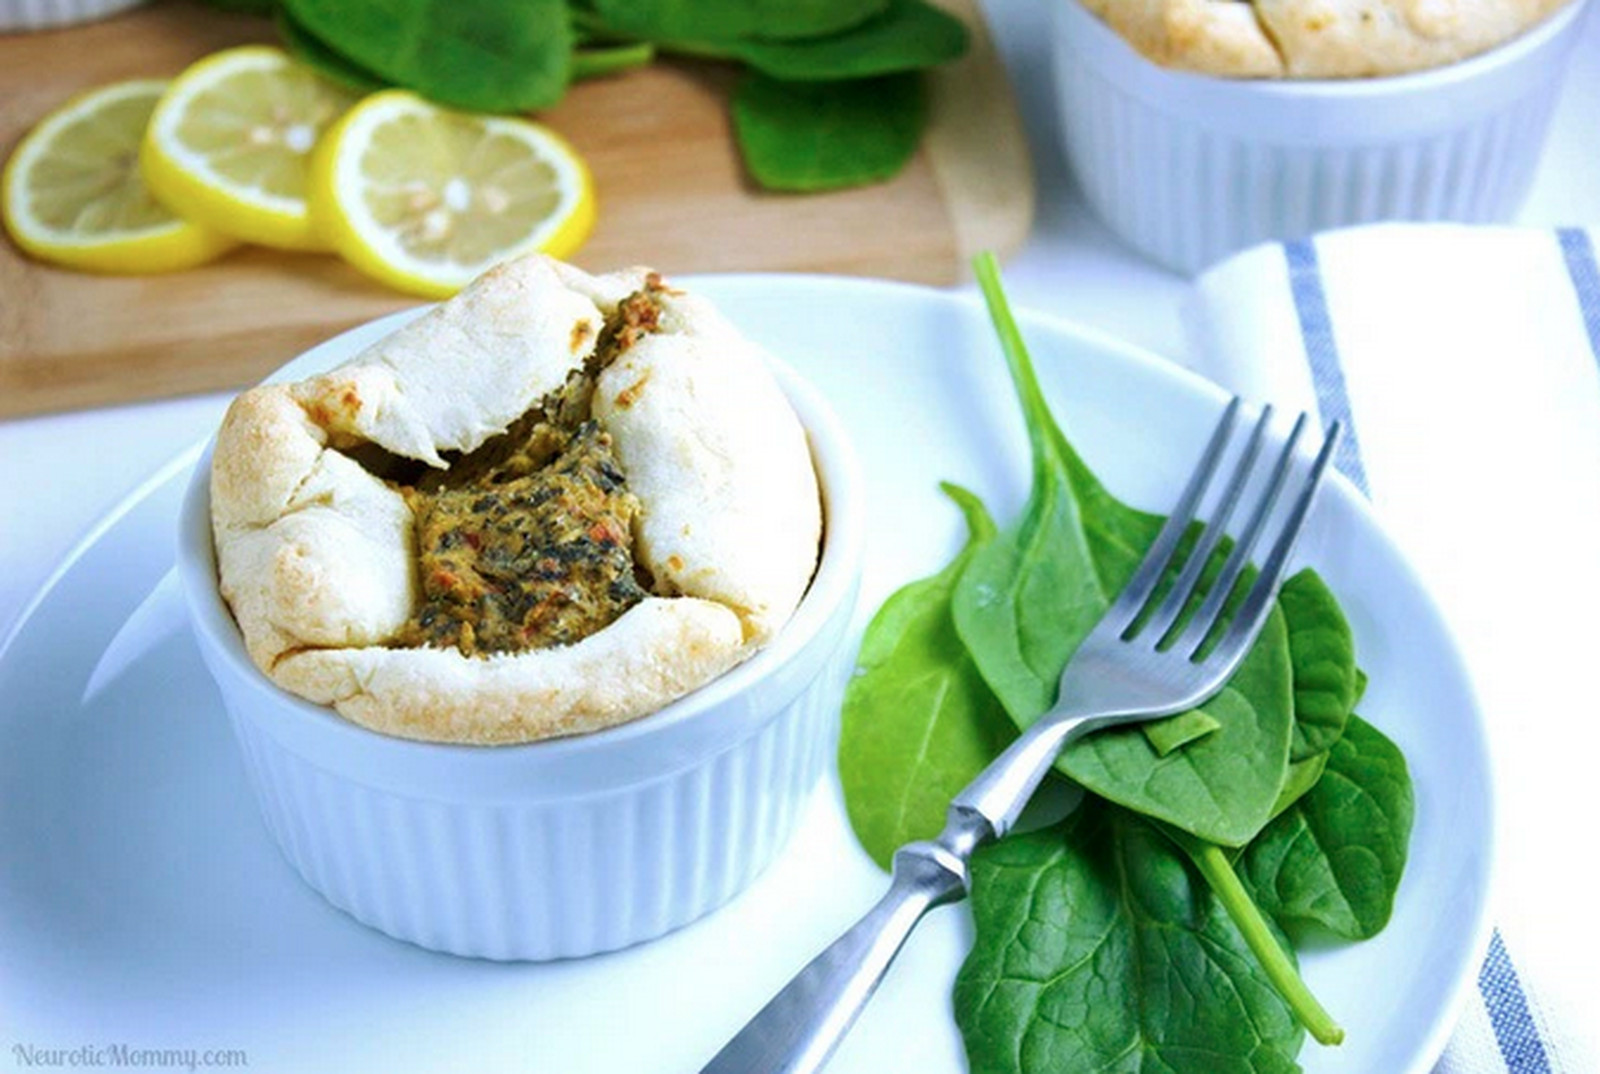 Spinach and Artichoke Soufflé [Vegan]